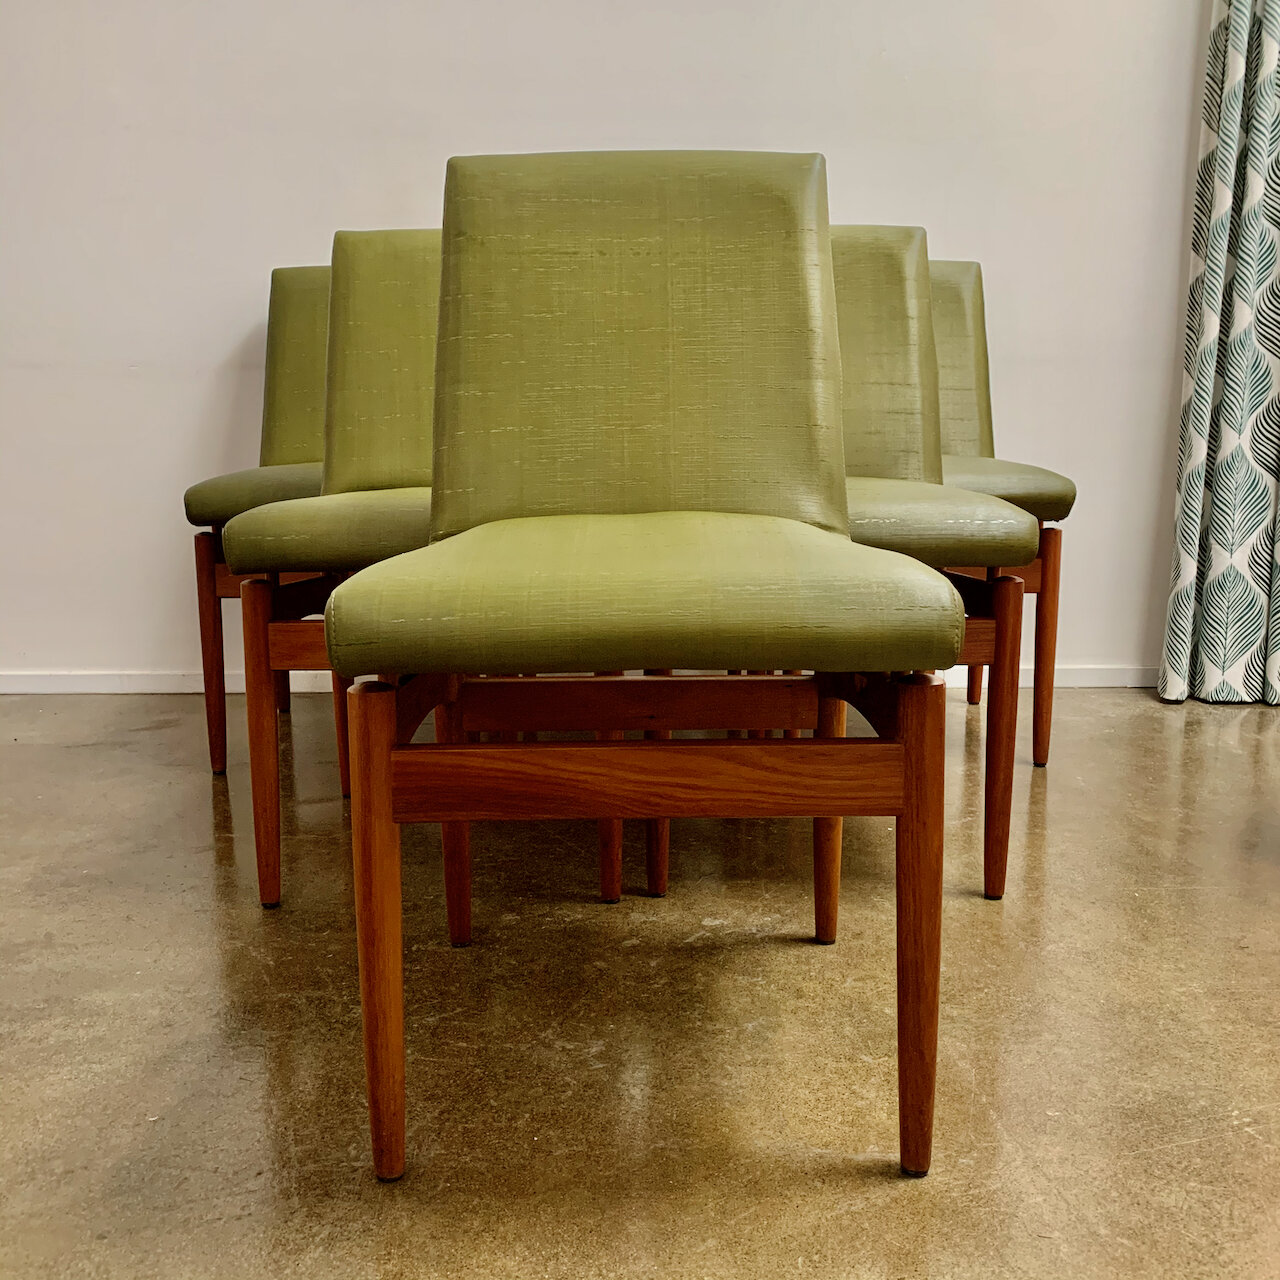 Image of: Mid Century Dining Chairs Th Brown And Sons Retro Rehab